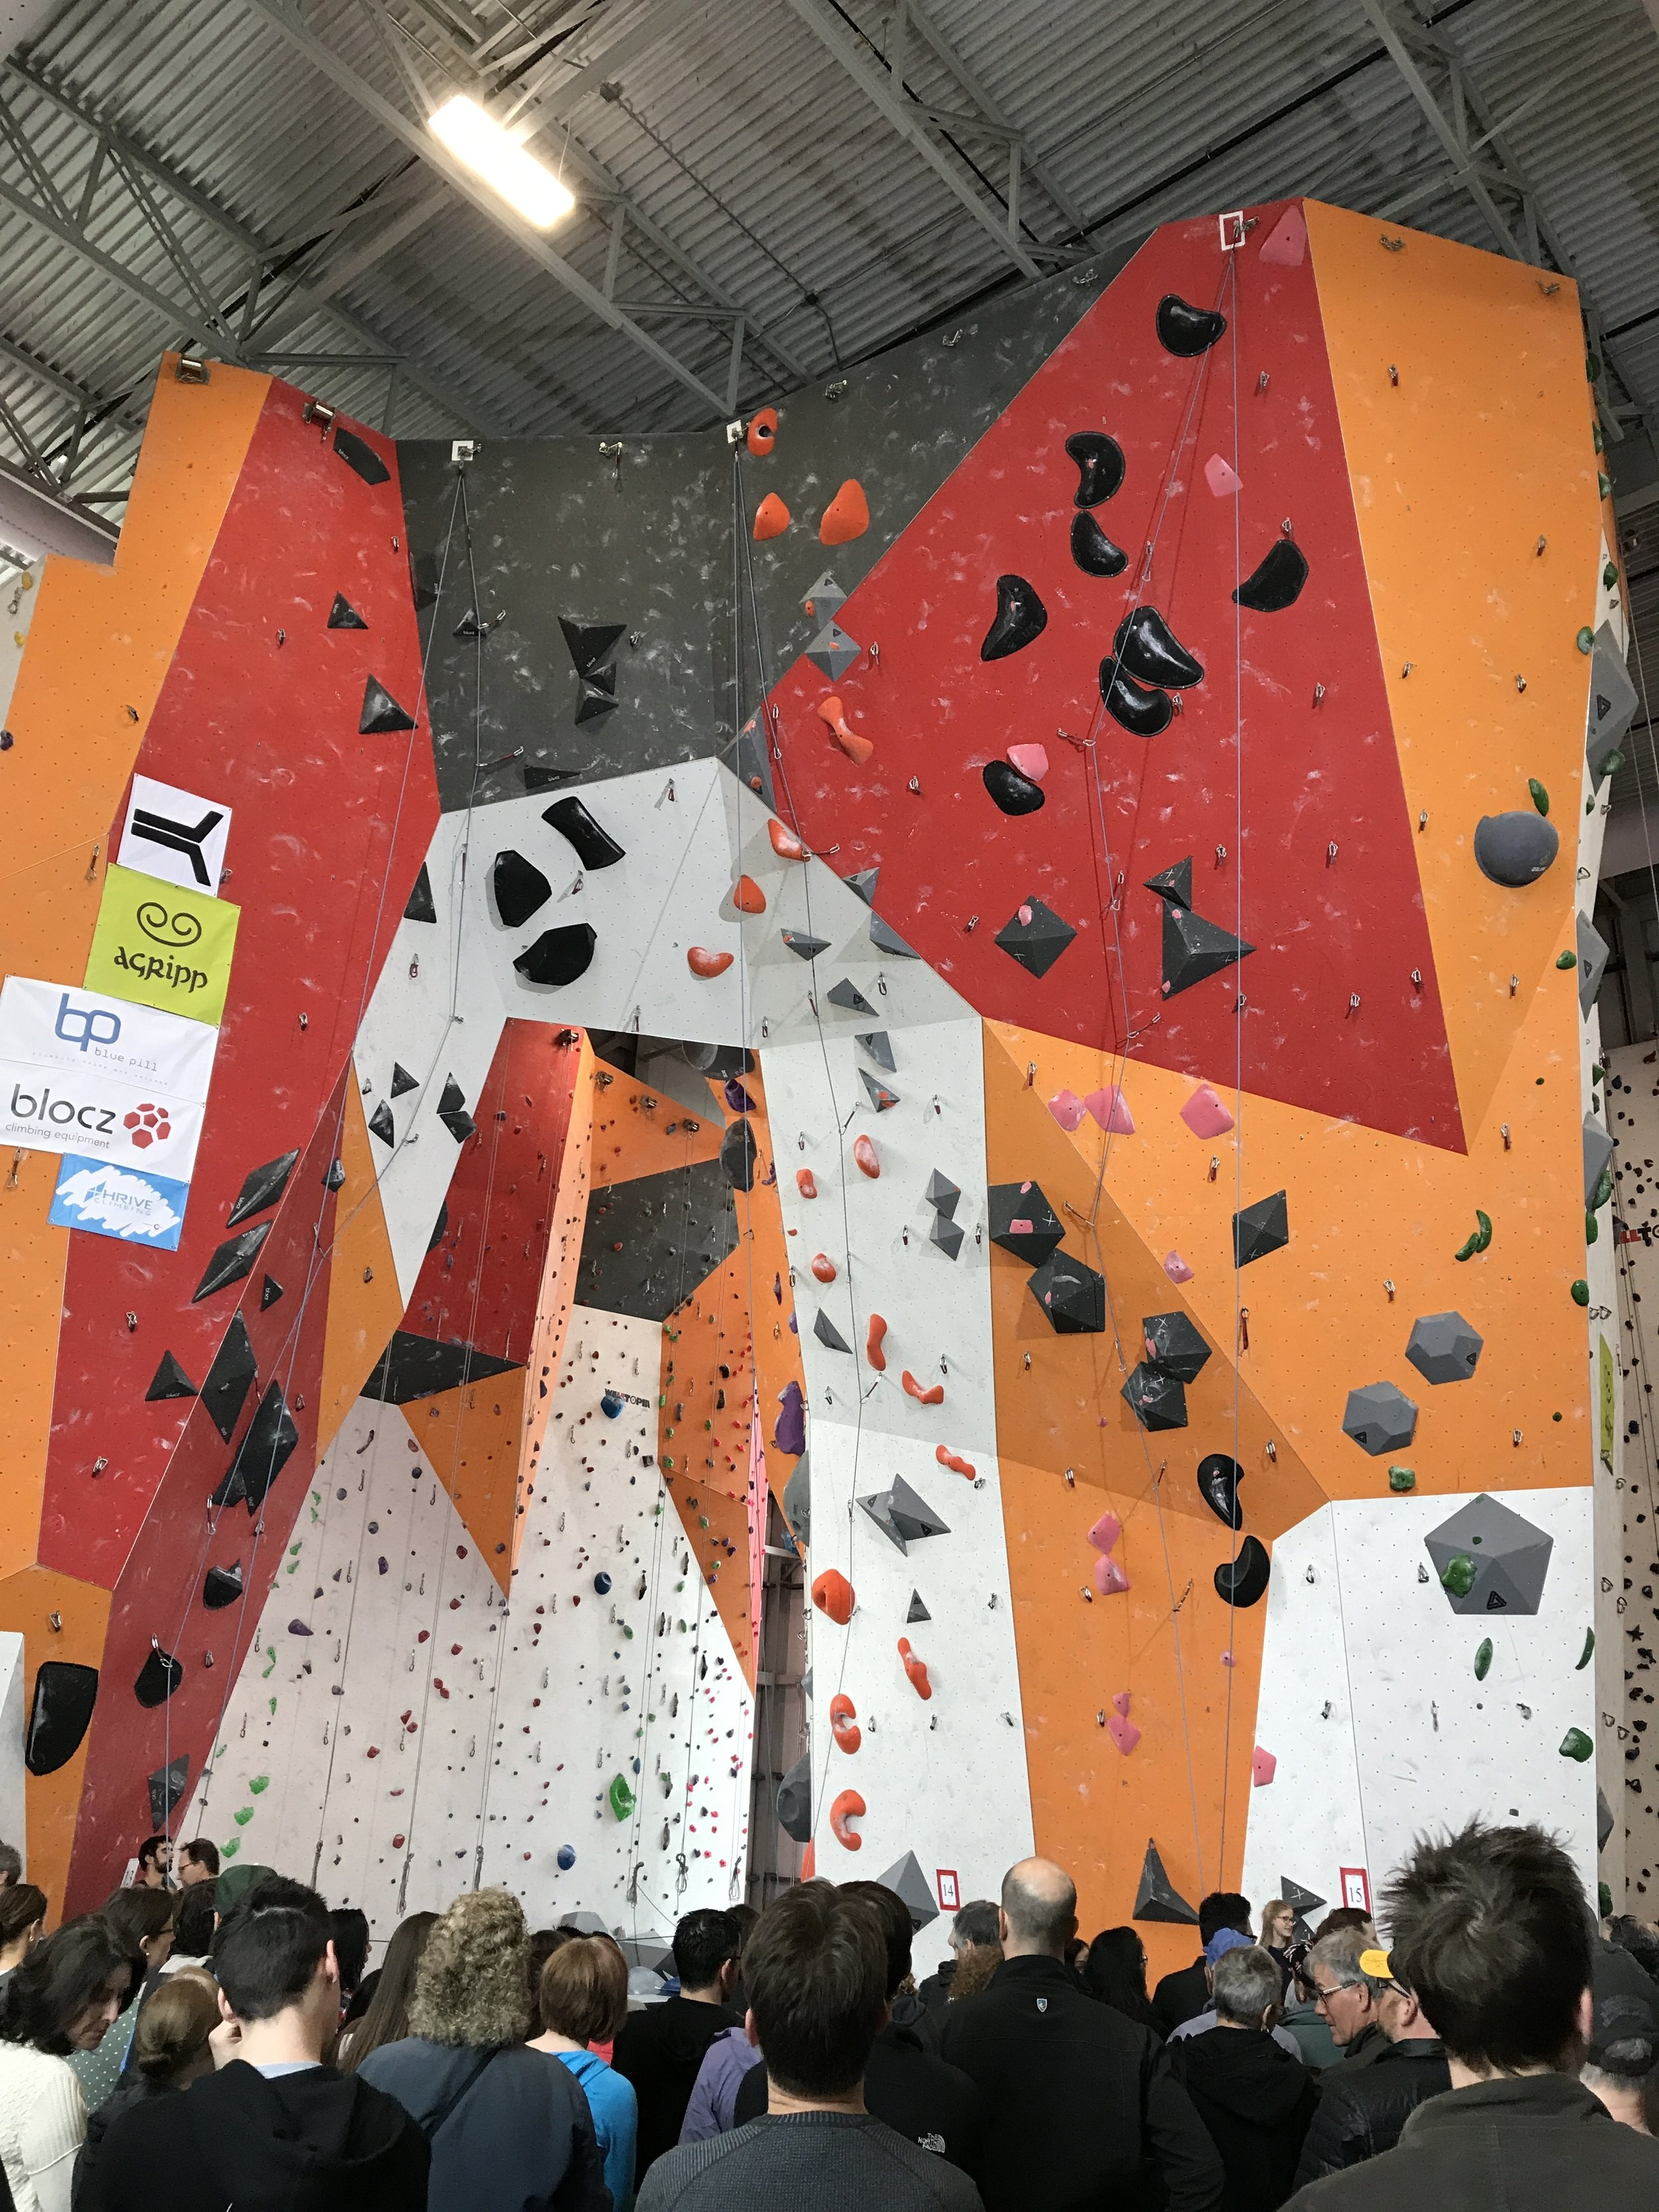 Canadian Difficulty Nationals 2017 Finals at Canyon Escalade. Black at left for B Boys/Girls, orange/gray at centre-left for A/JR/Open Women, pink/black at centre-right for A/JR/Open Men, green/gray at right for C Boys/Girls.